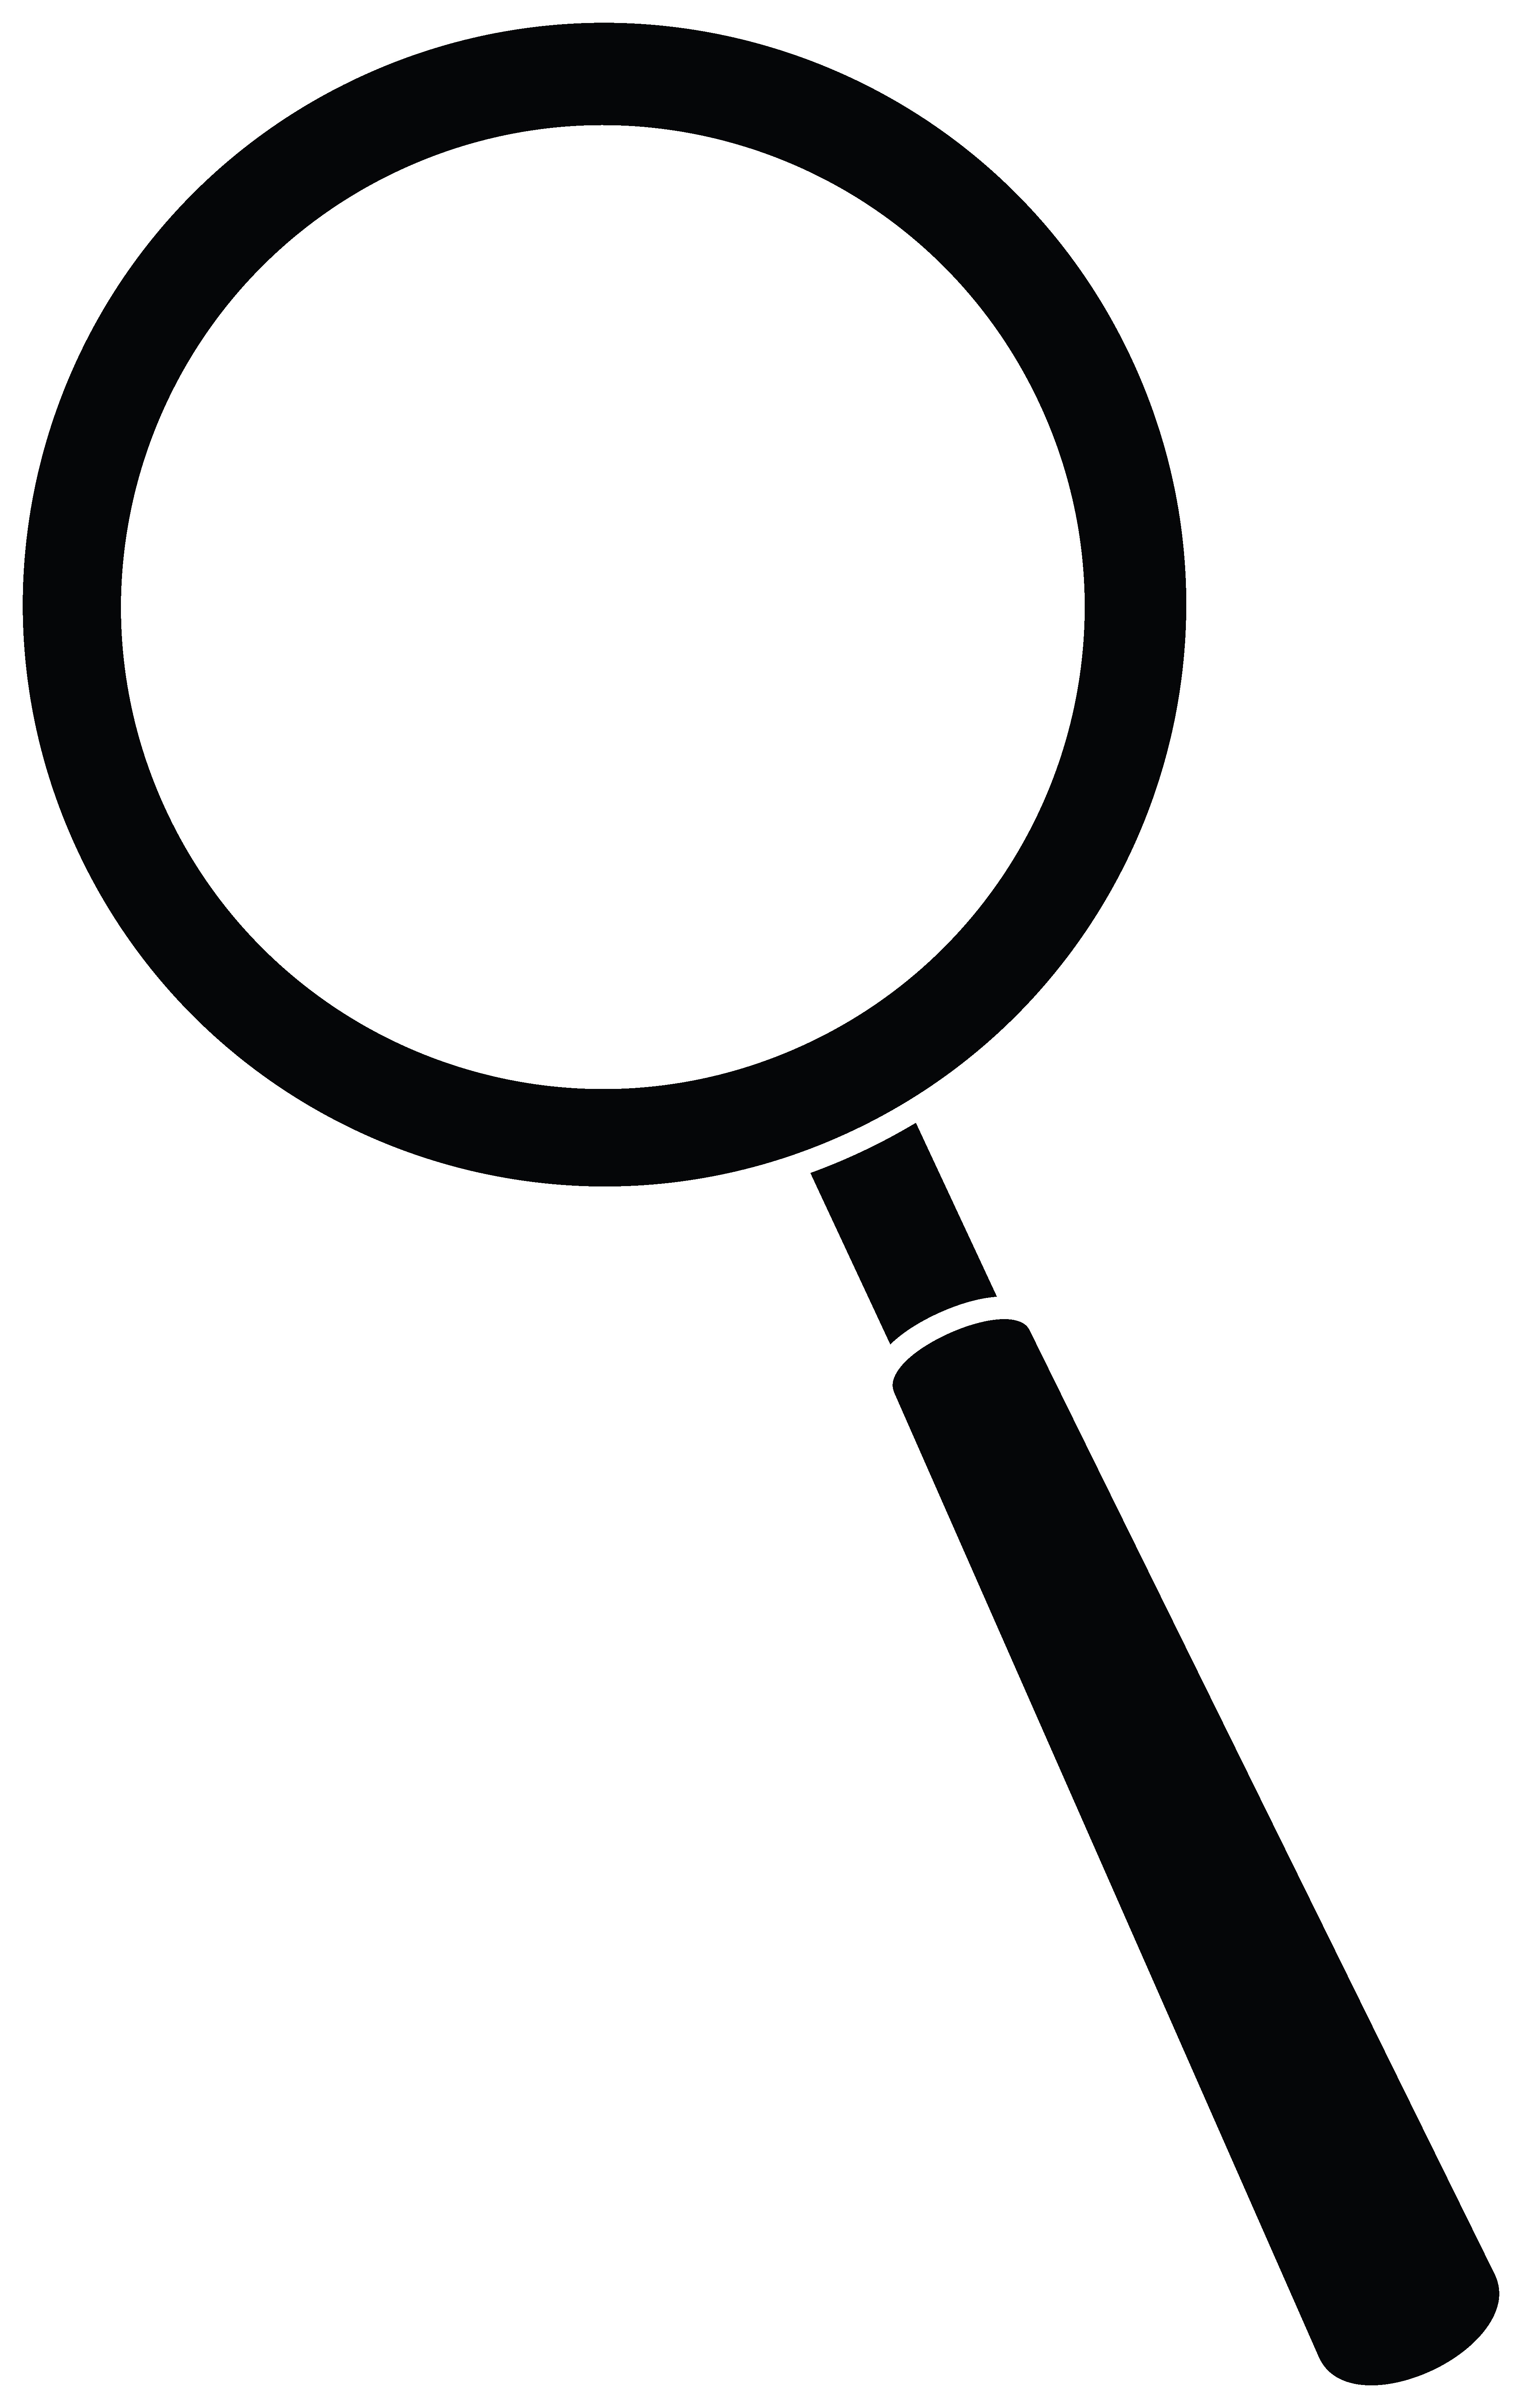 Magnifying clipart. Glass